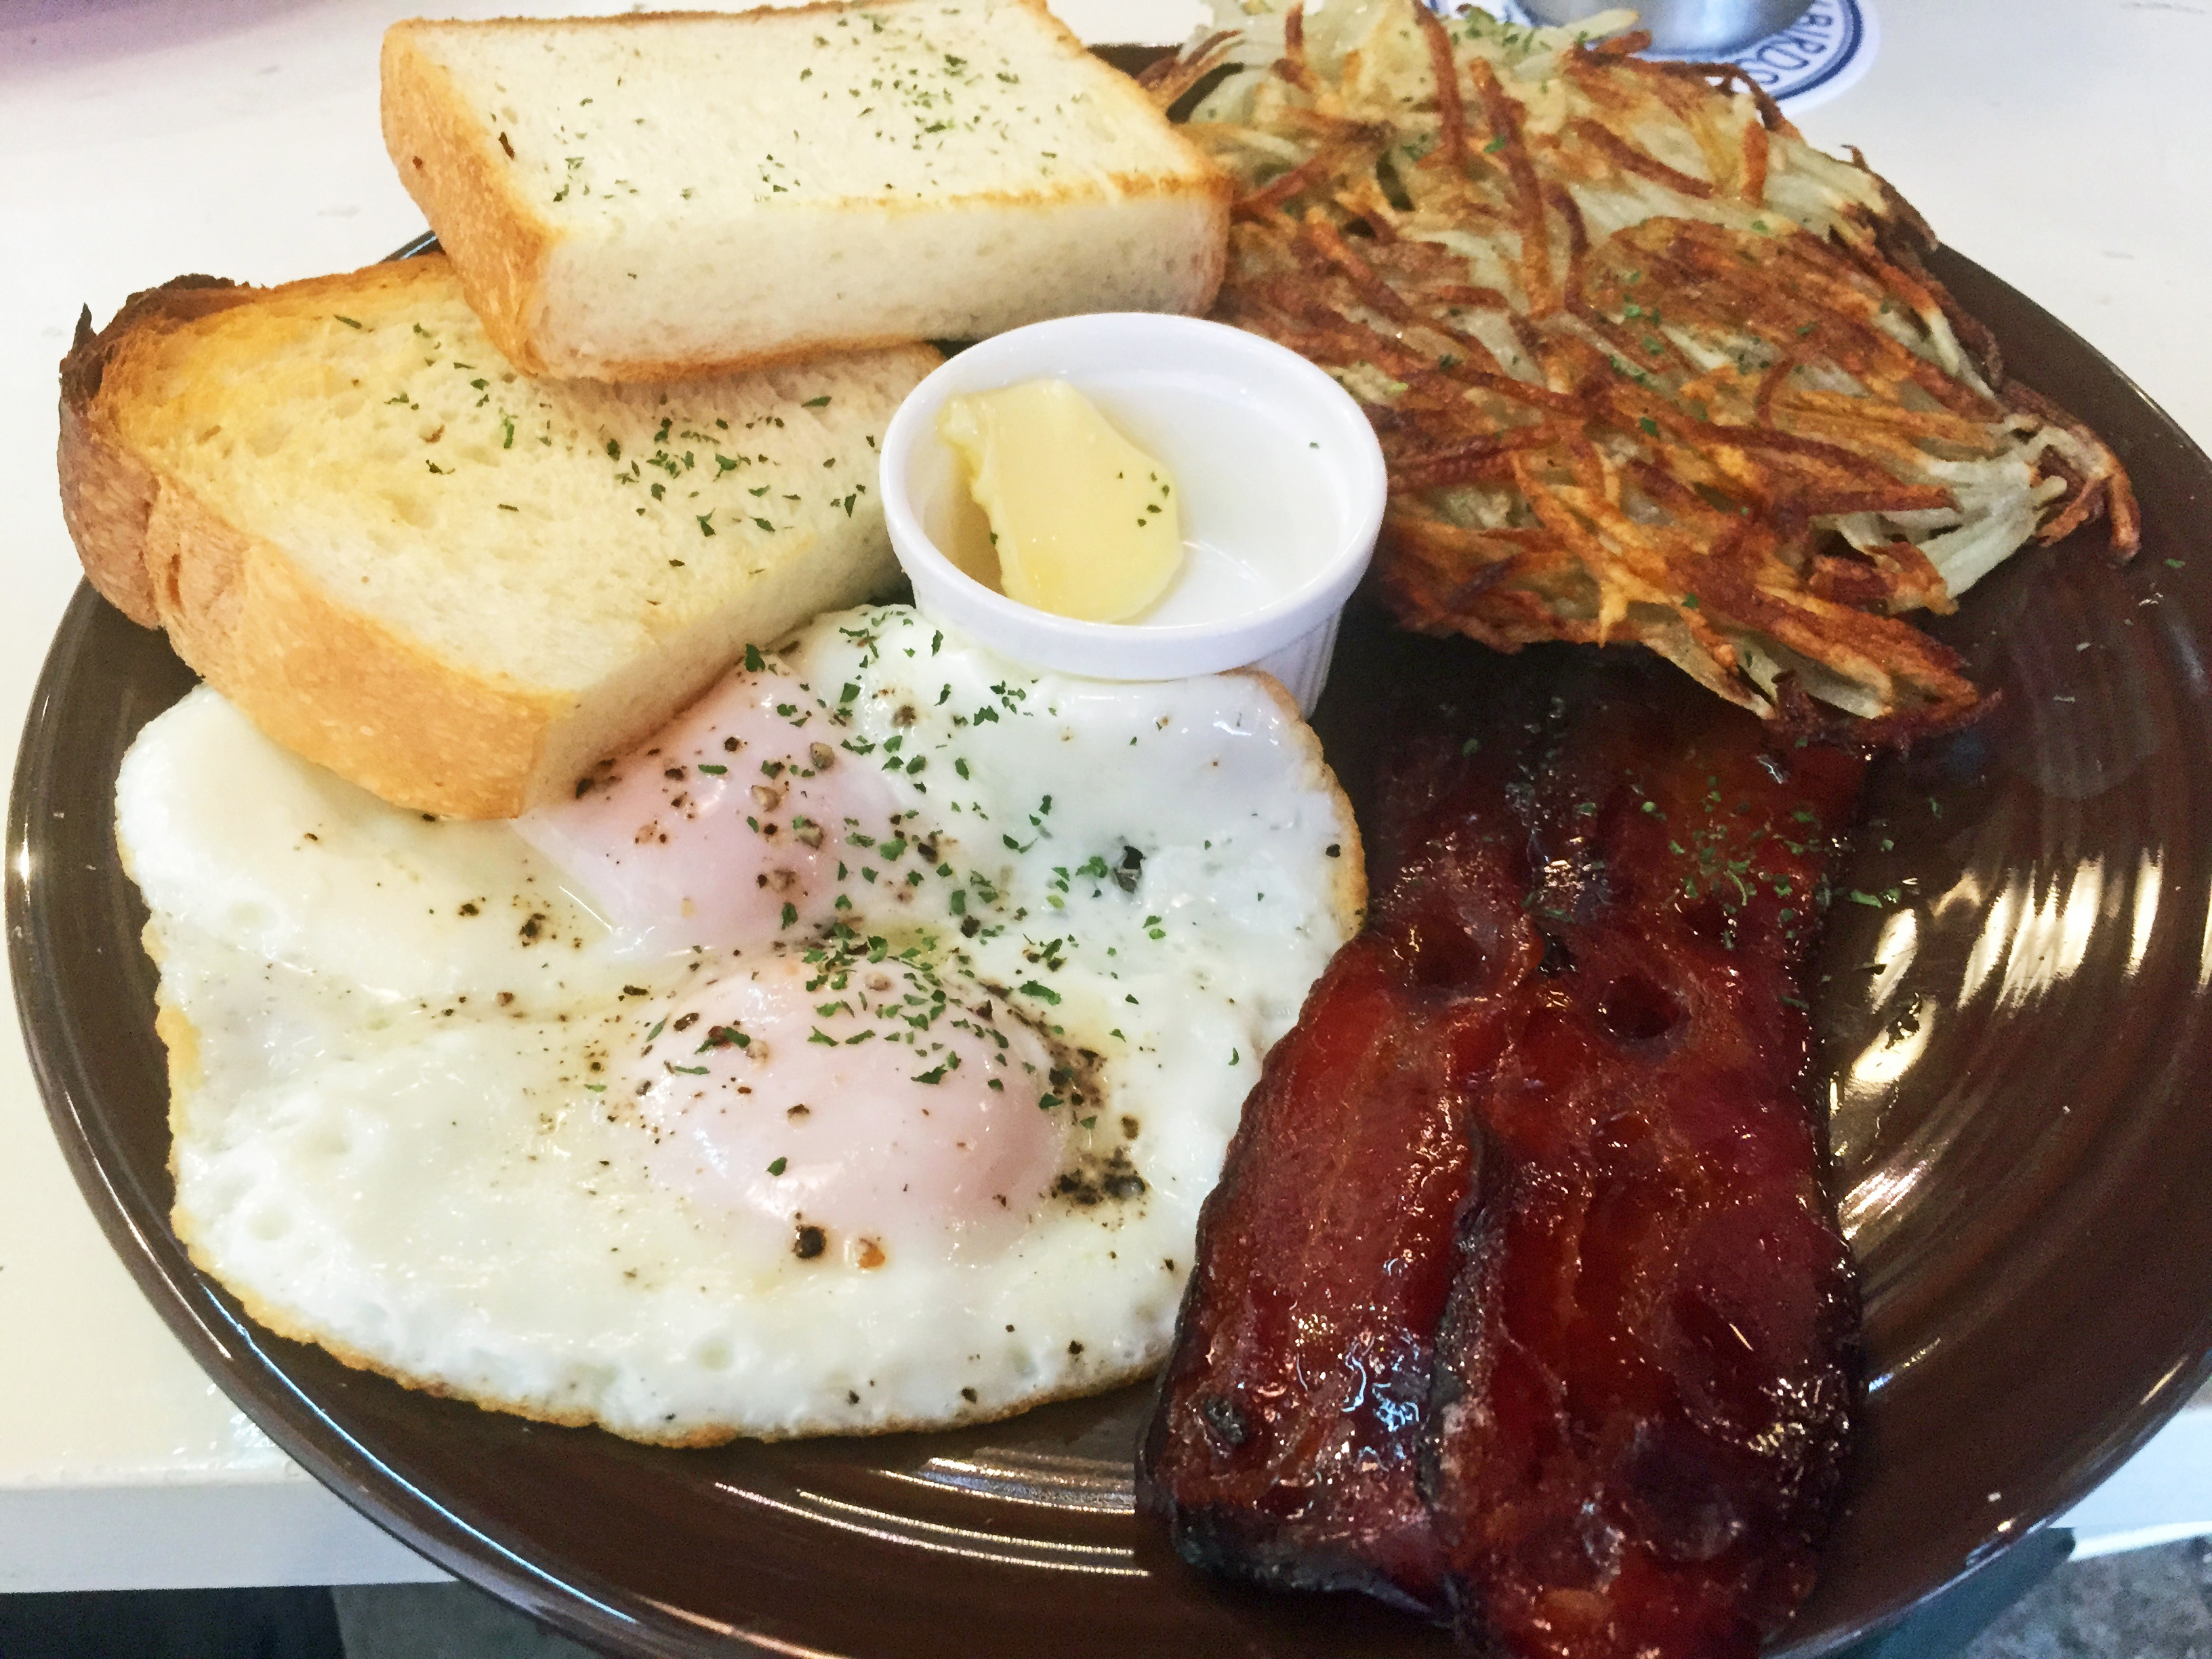 Nagoya's best brunch?: Early Bird's breakfast plate comes with eggs, toast, bacon and a hash brown. | ADAM MILLER